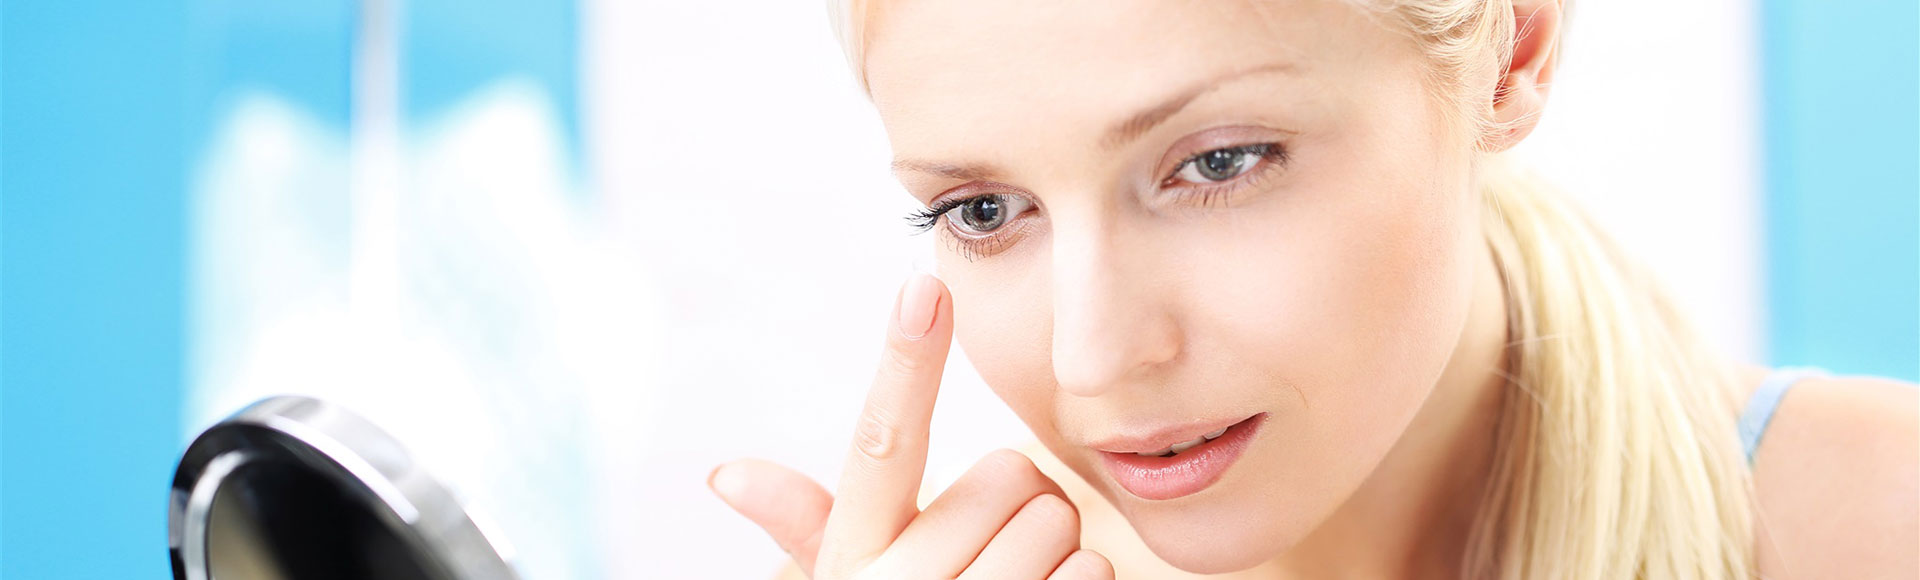 Contact Lenses for Teens or Tweens Part 2